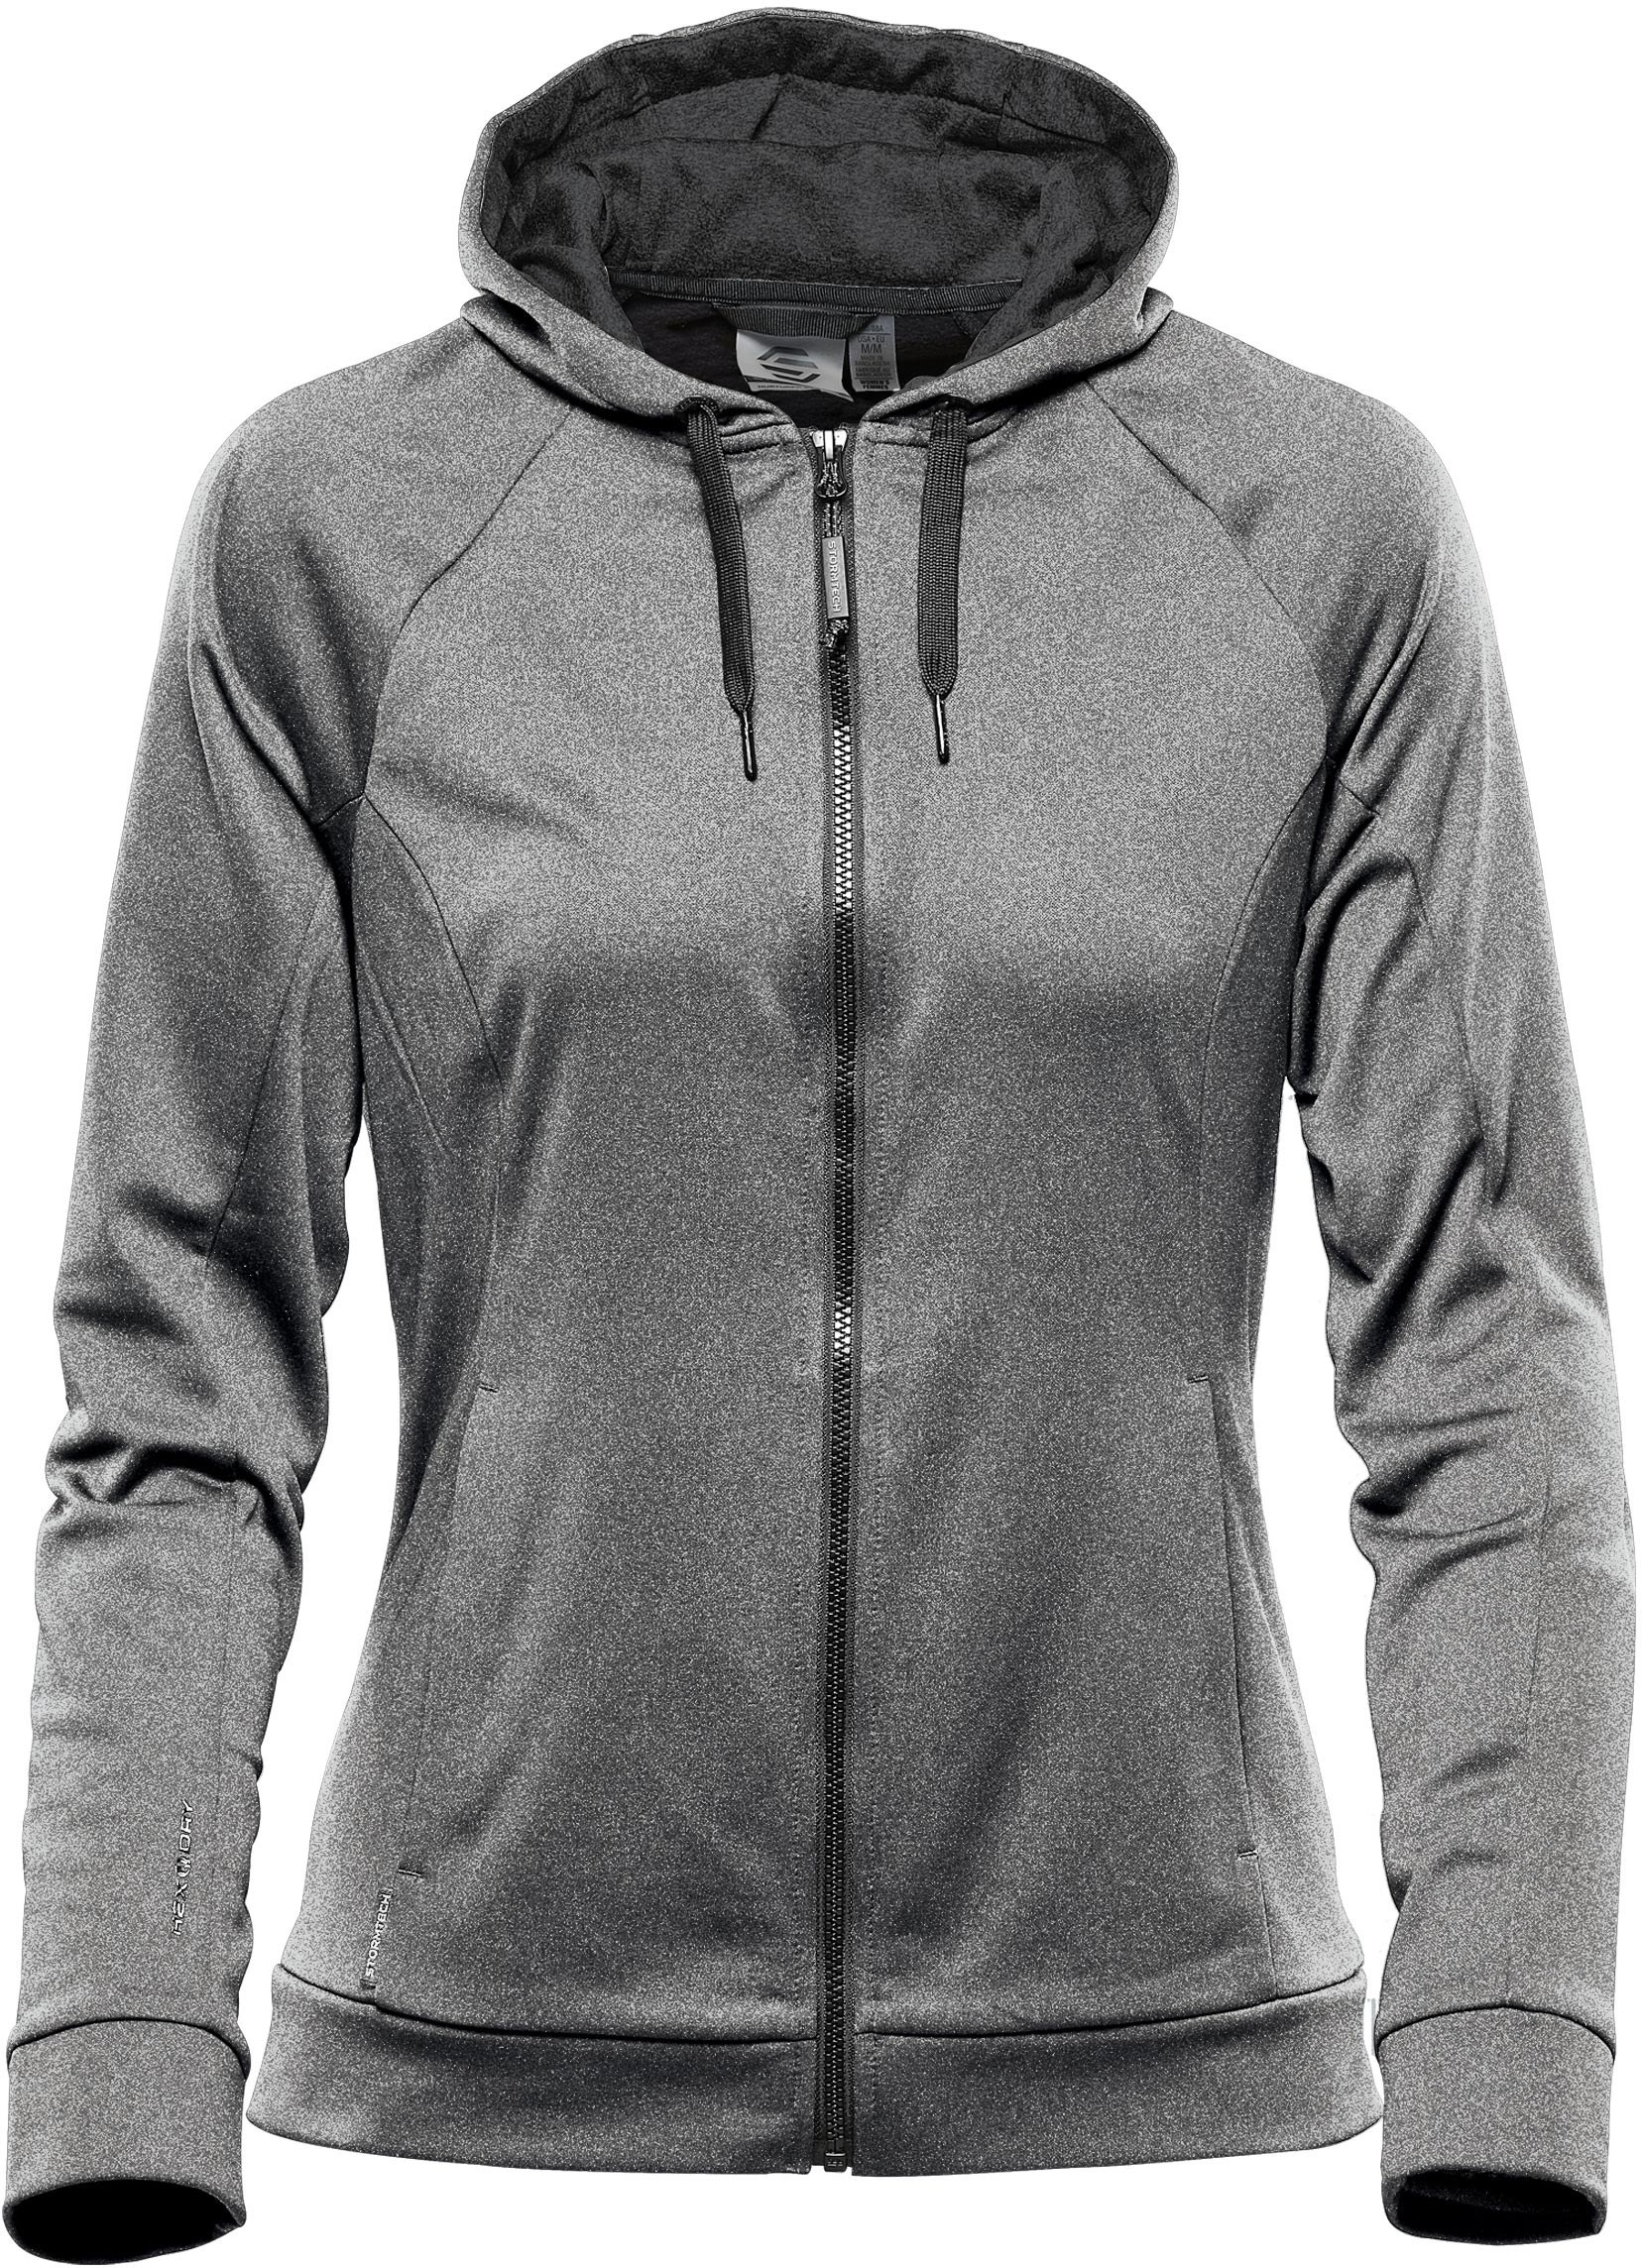 Picture of Stormtech Women's Halifax Hoody